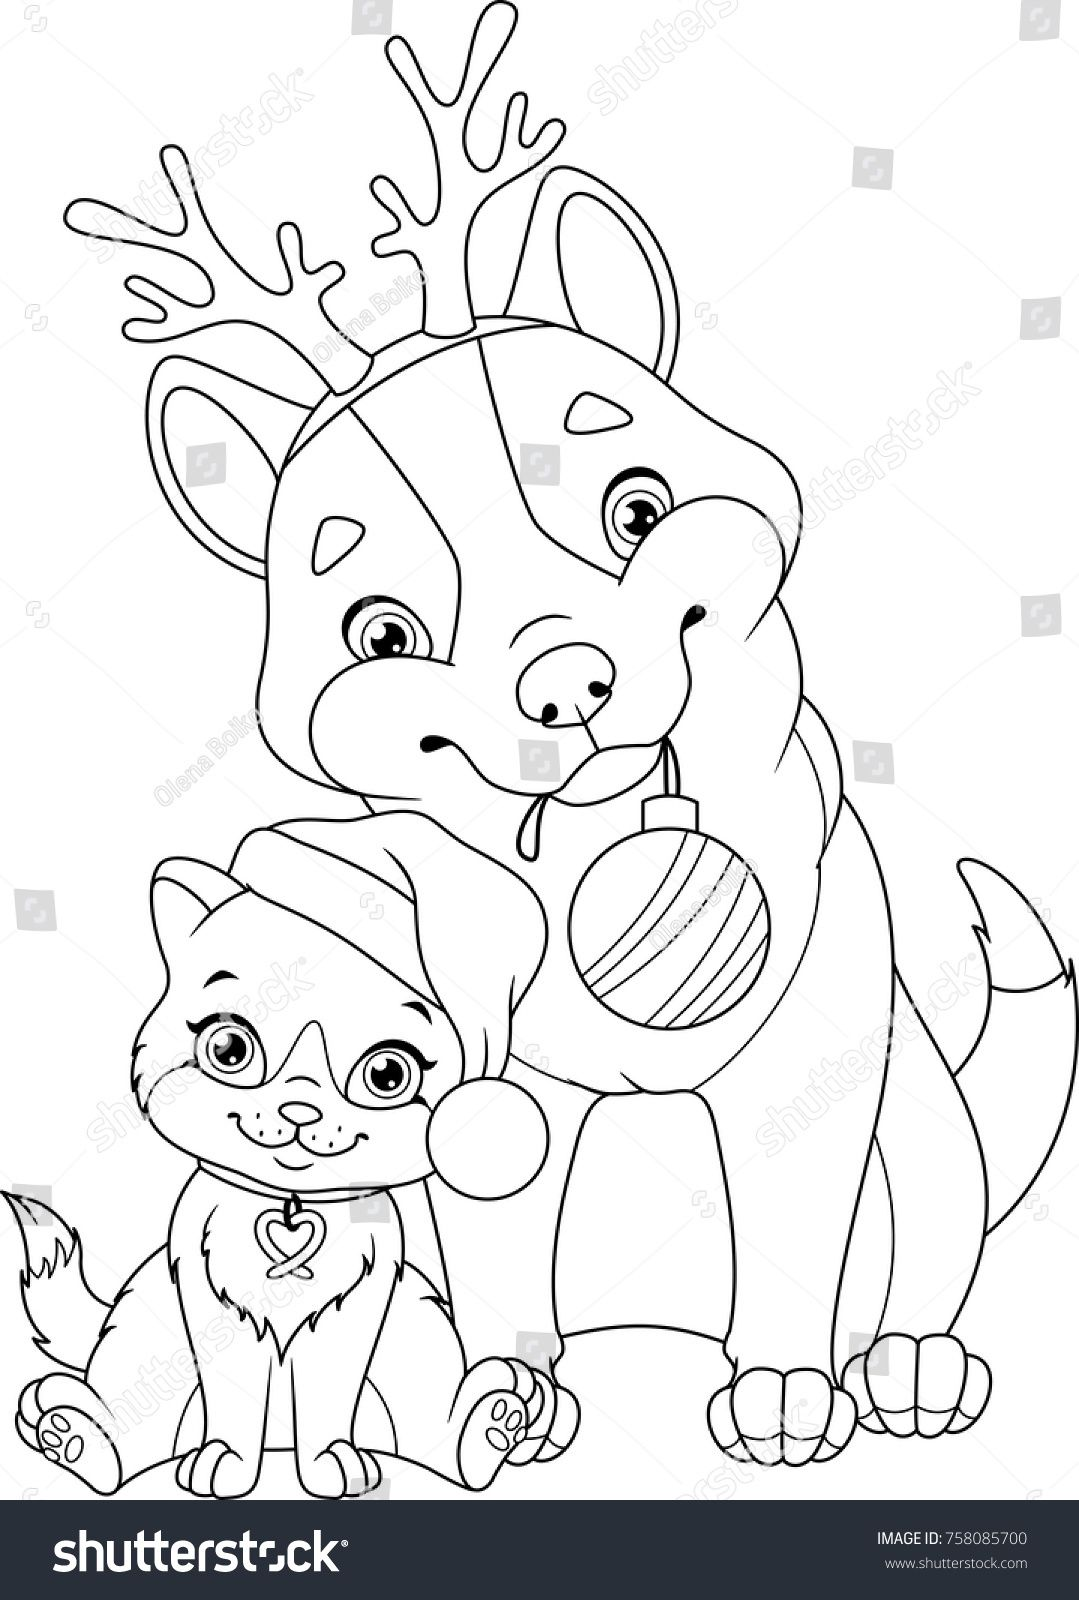 Christmas Dog Cat Coloring Page Stock Vector Royalty Free 758085700 Dog Coloring Book Dog Coloring Page Cat Coloring Page